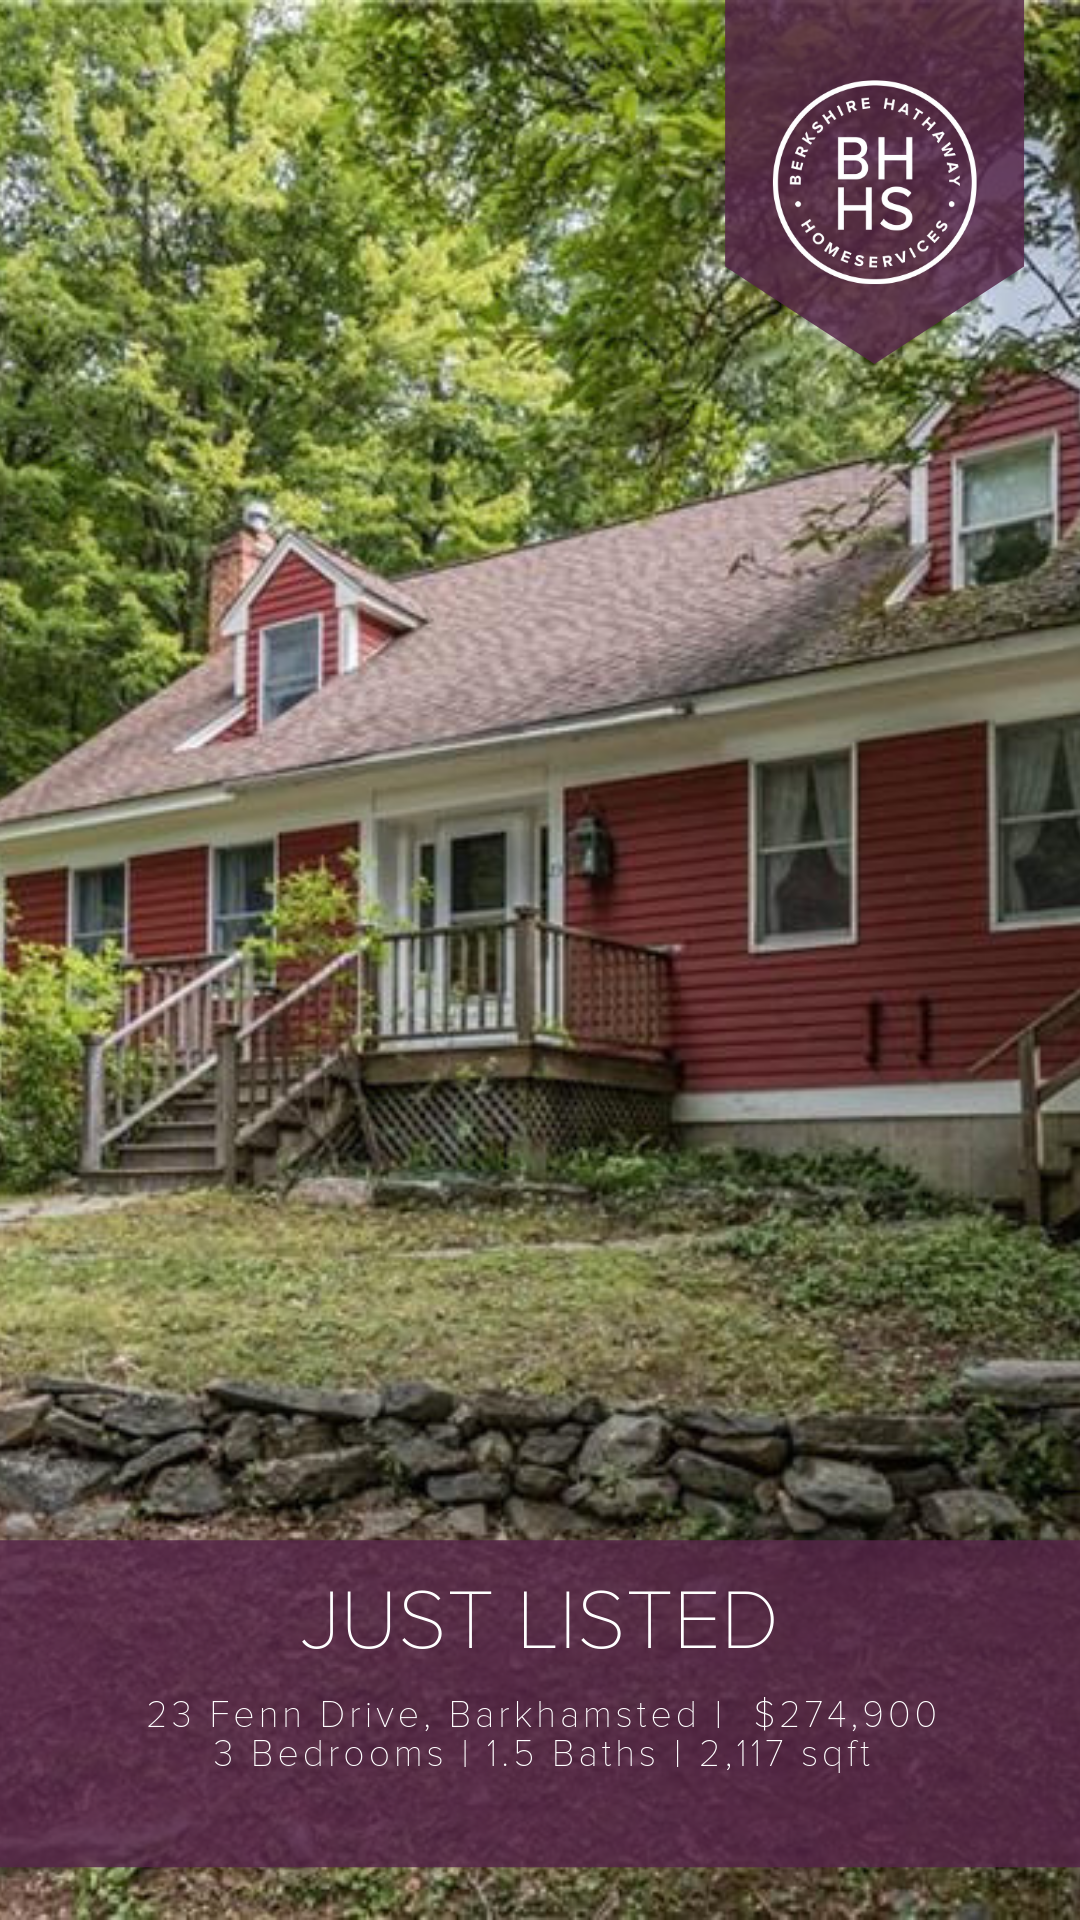 Just Sold 23 Fenn Drive Barkhamsted Ct 06063 Berkshire Hathaway Homeservices New England Properties House Styles Property Berkshire